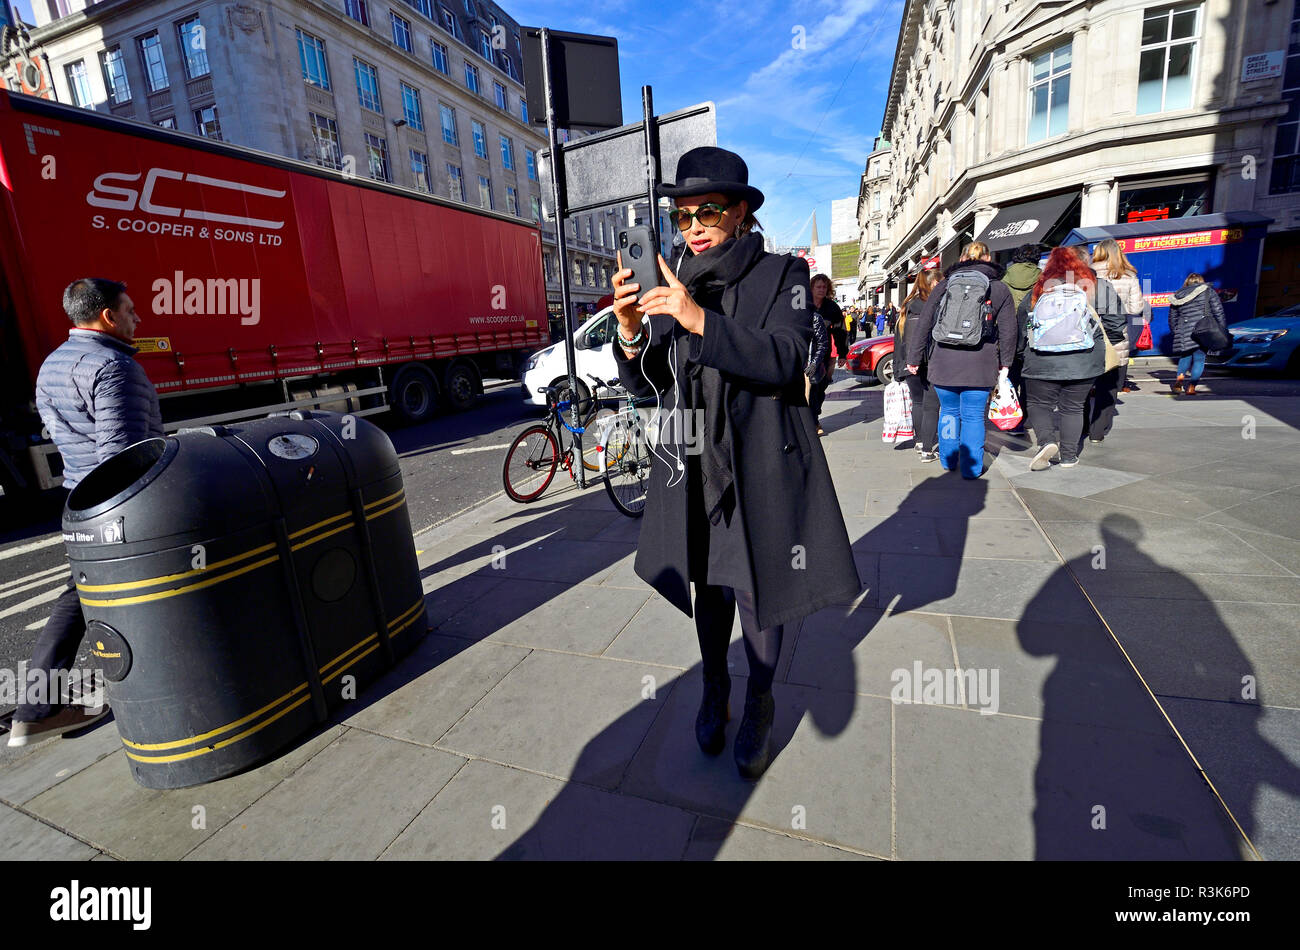 London, England, UK. Woman wearing a hat, filming on her mobile phone while walking - Stock Image